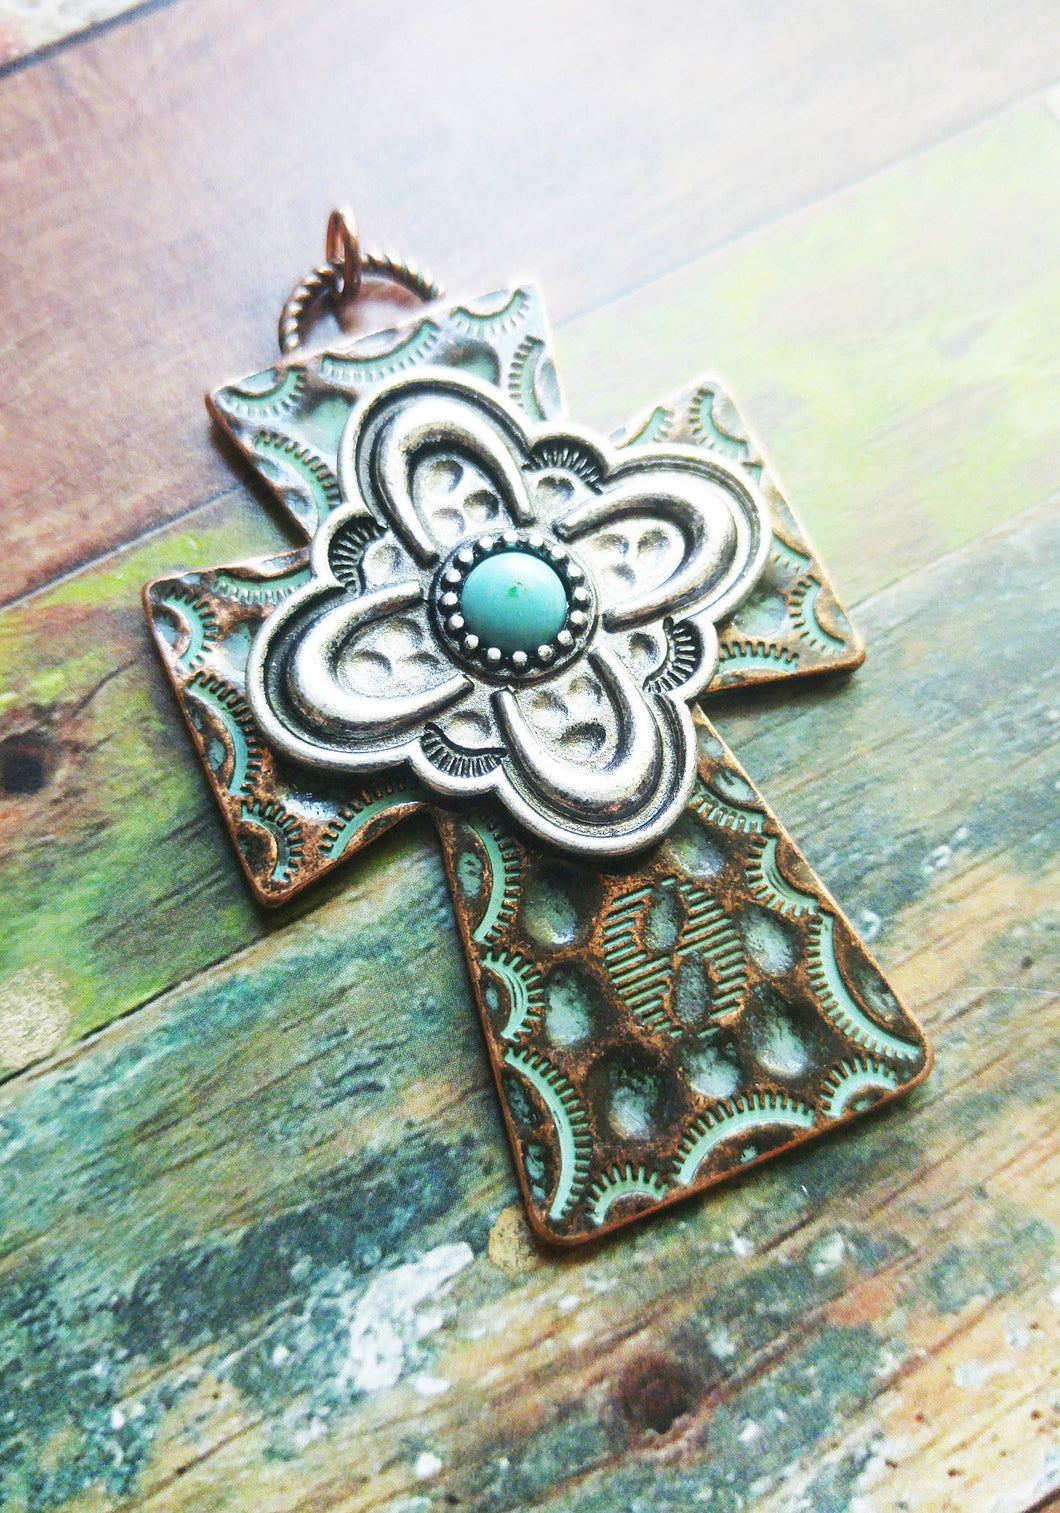 Large Cross Pendant Antiqued Copper Silver Cross Charm Turquoise Charm Vintage Style Focal Pendant Religious Charm Hammered Cross 2 7/16